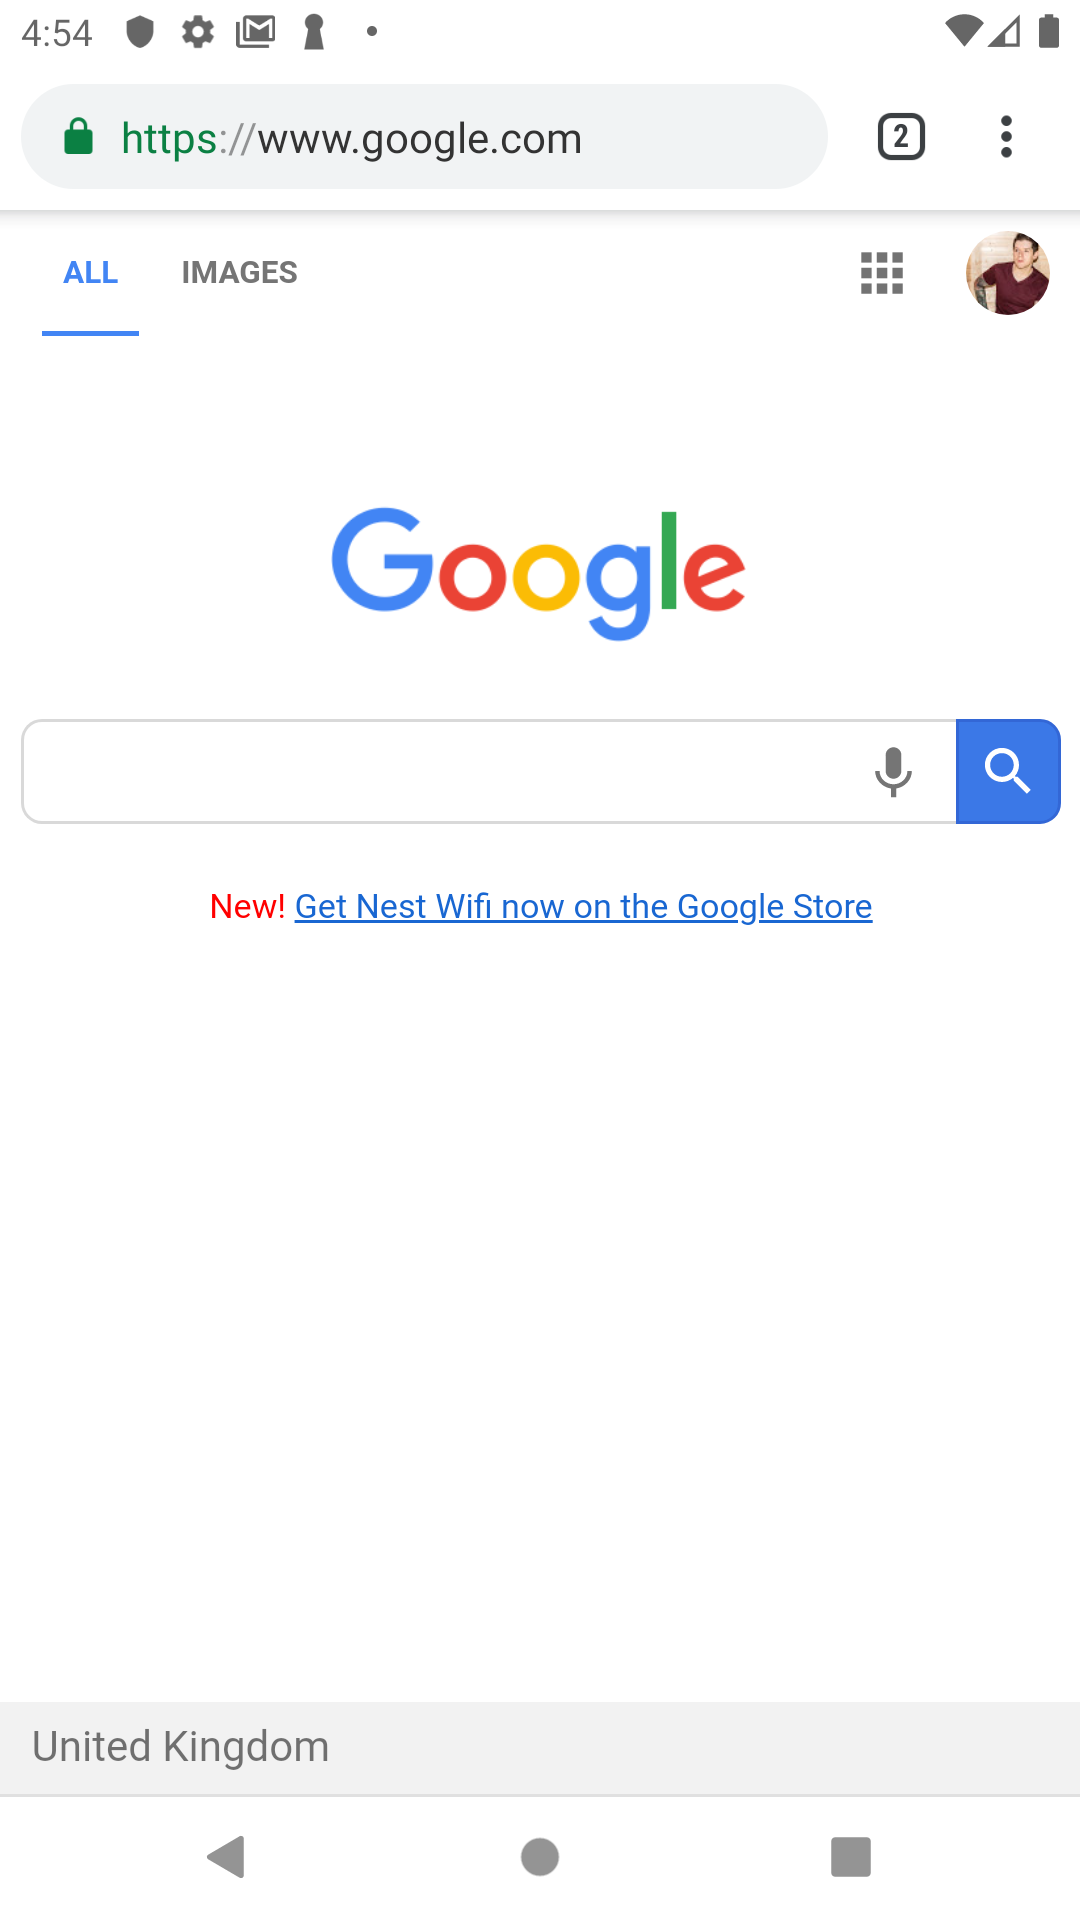 Screenshot of the url_launcher launching a browser with Google.